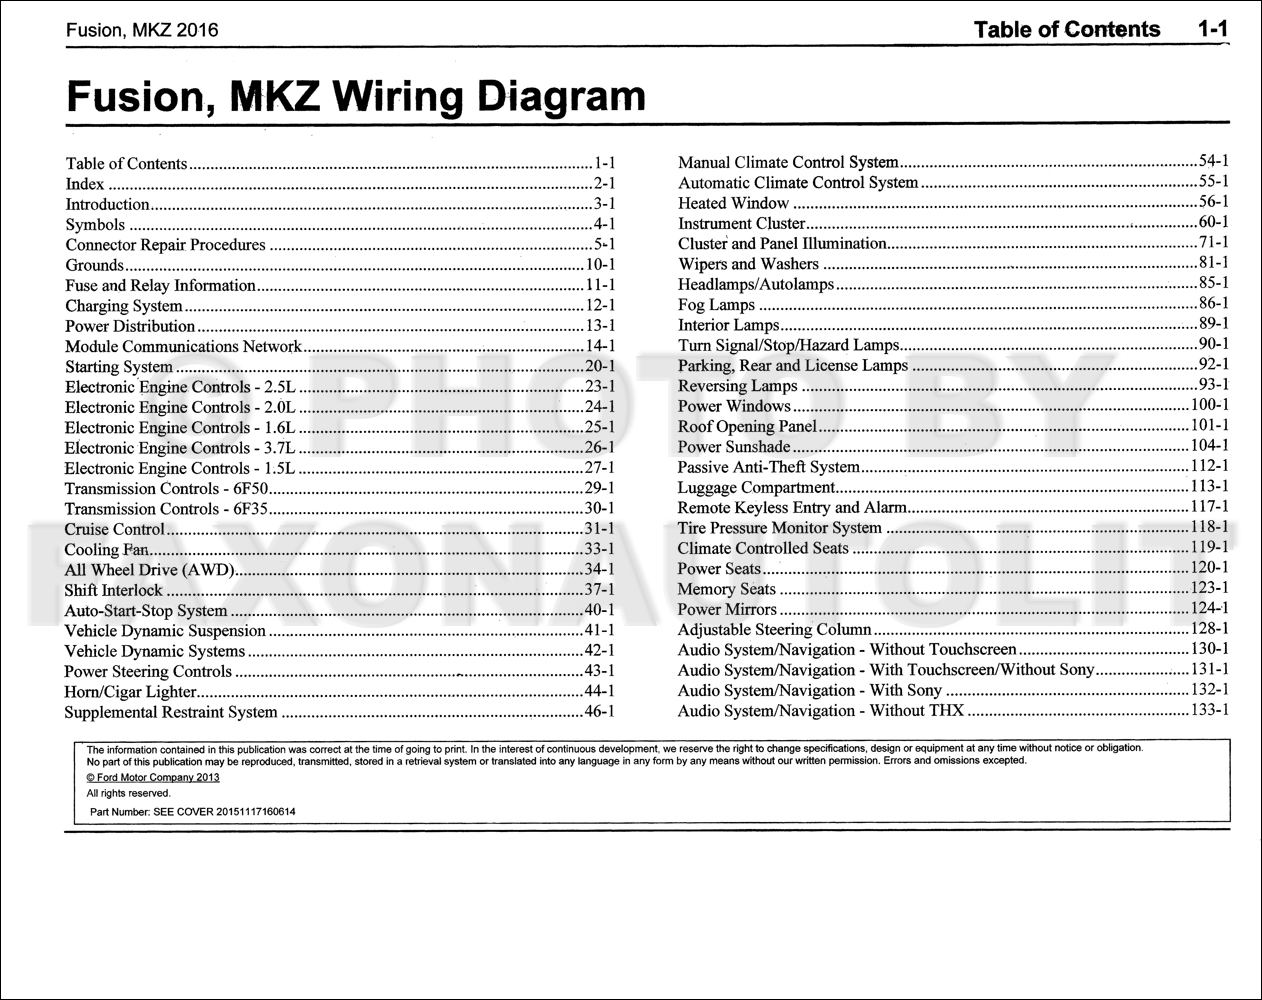 2016 Ford Fusion Wiring Diagram 31 Images 29